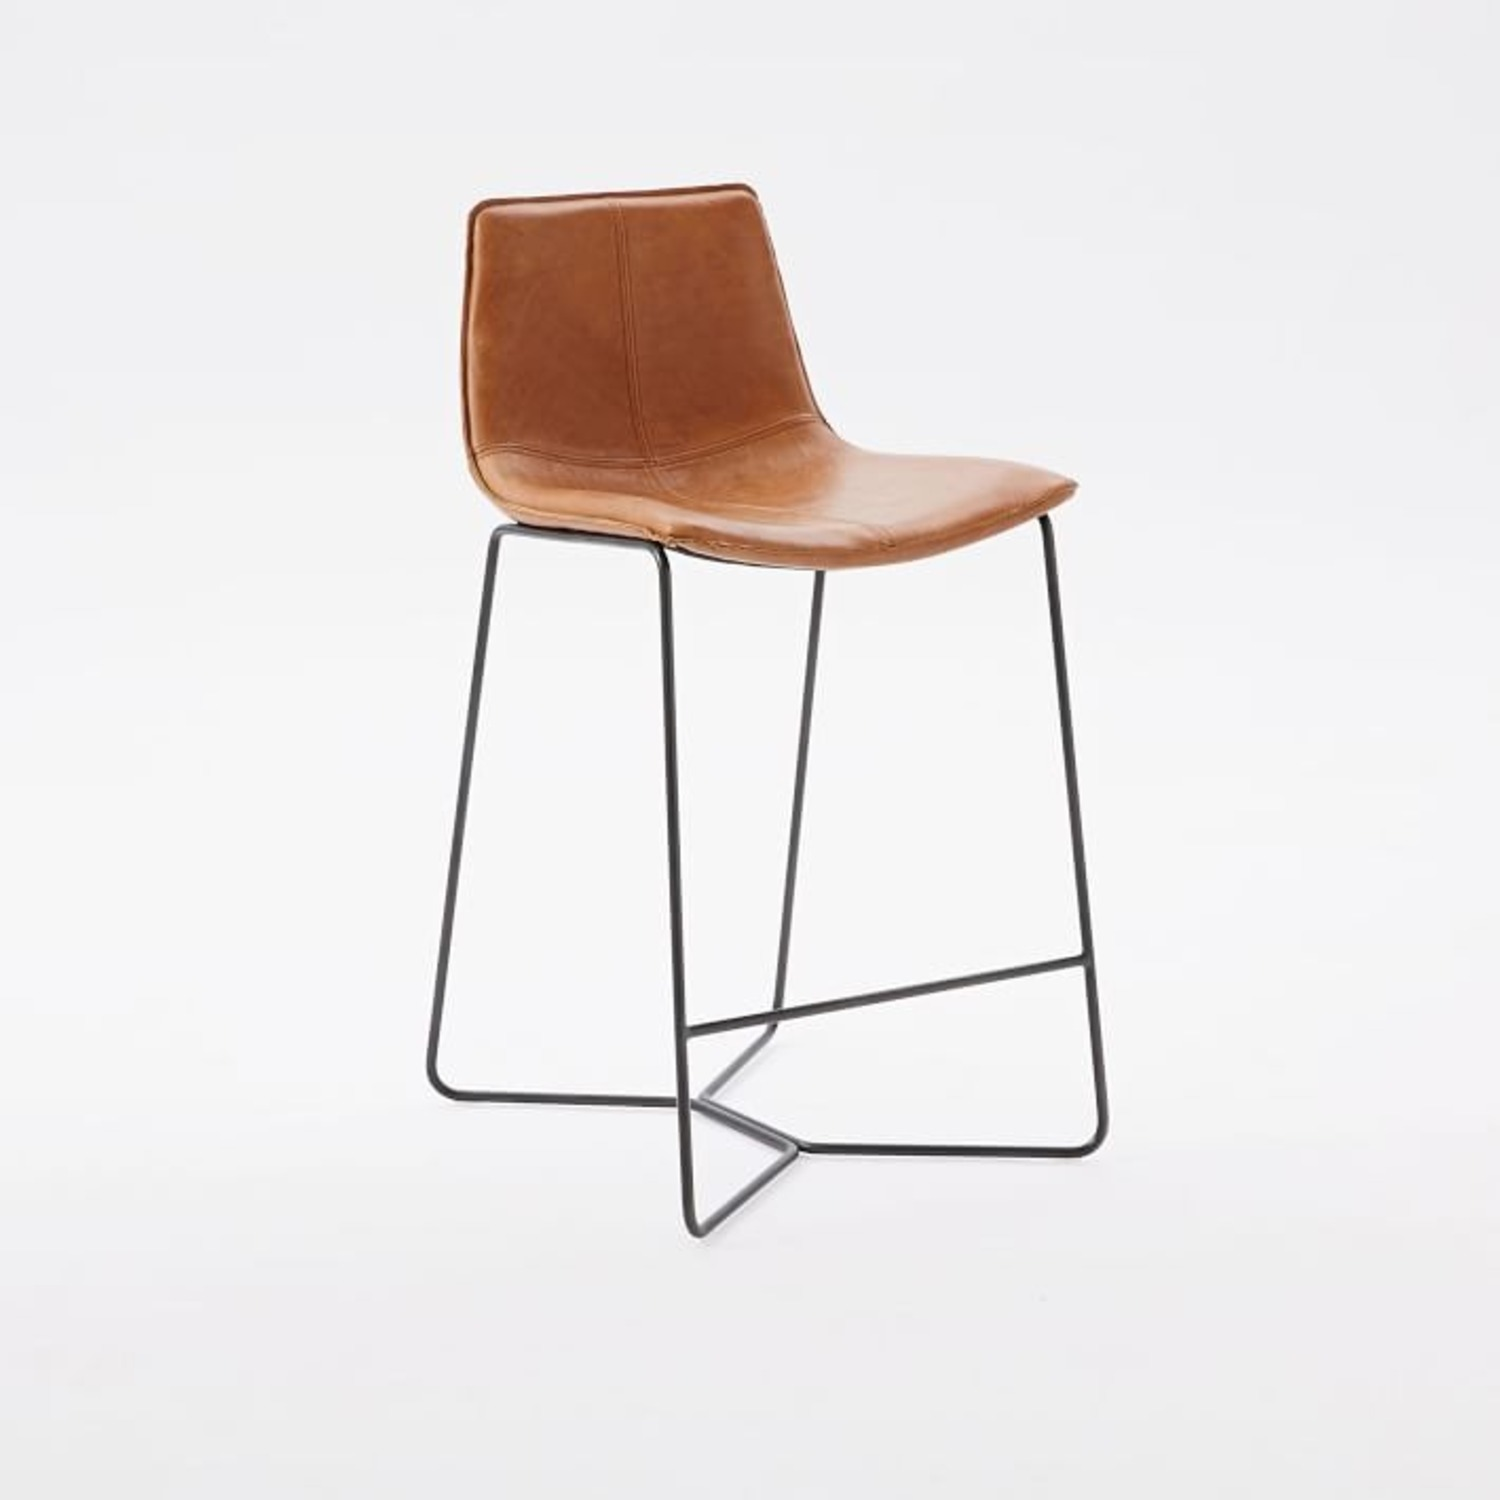 West Elm Leather Slope Counter Stool - image-1